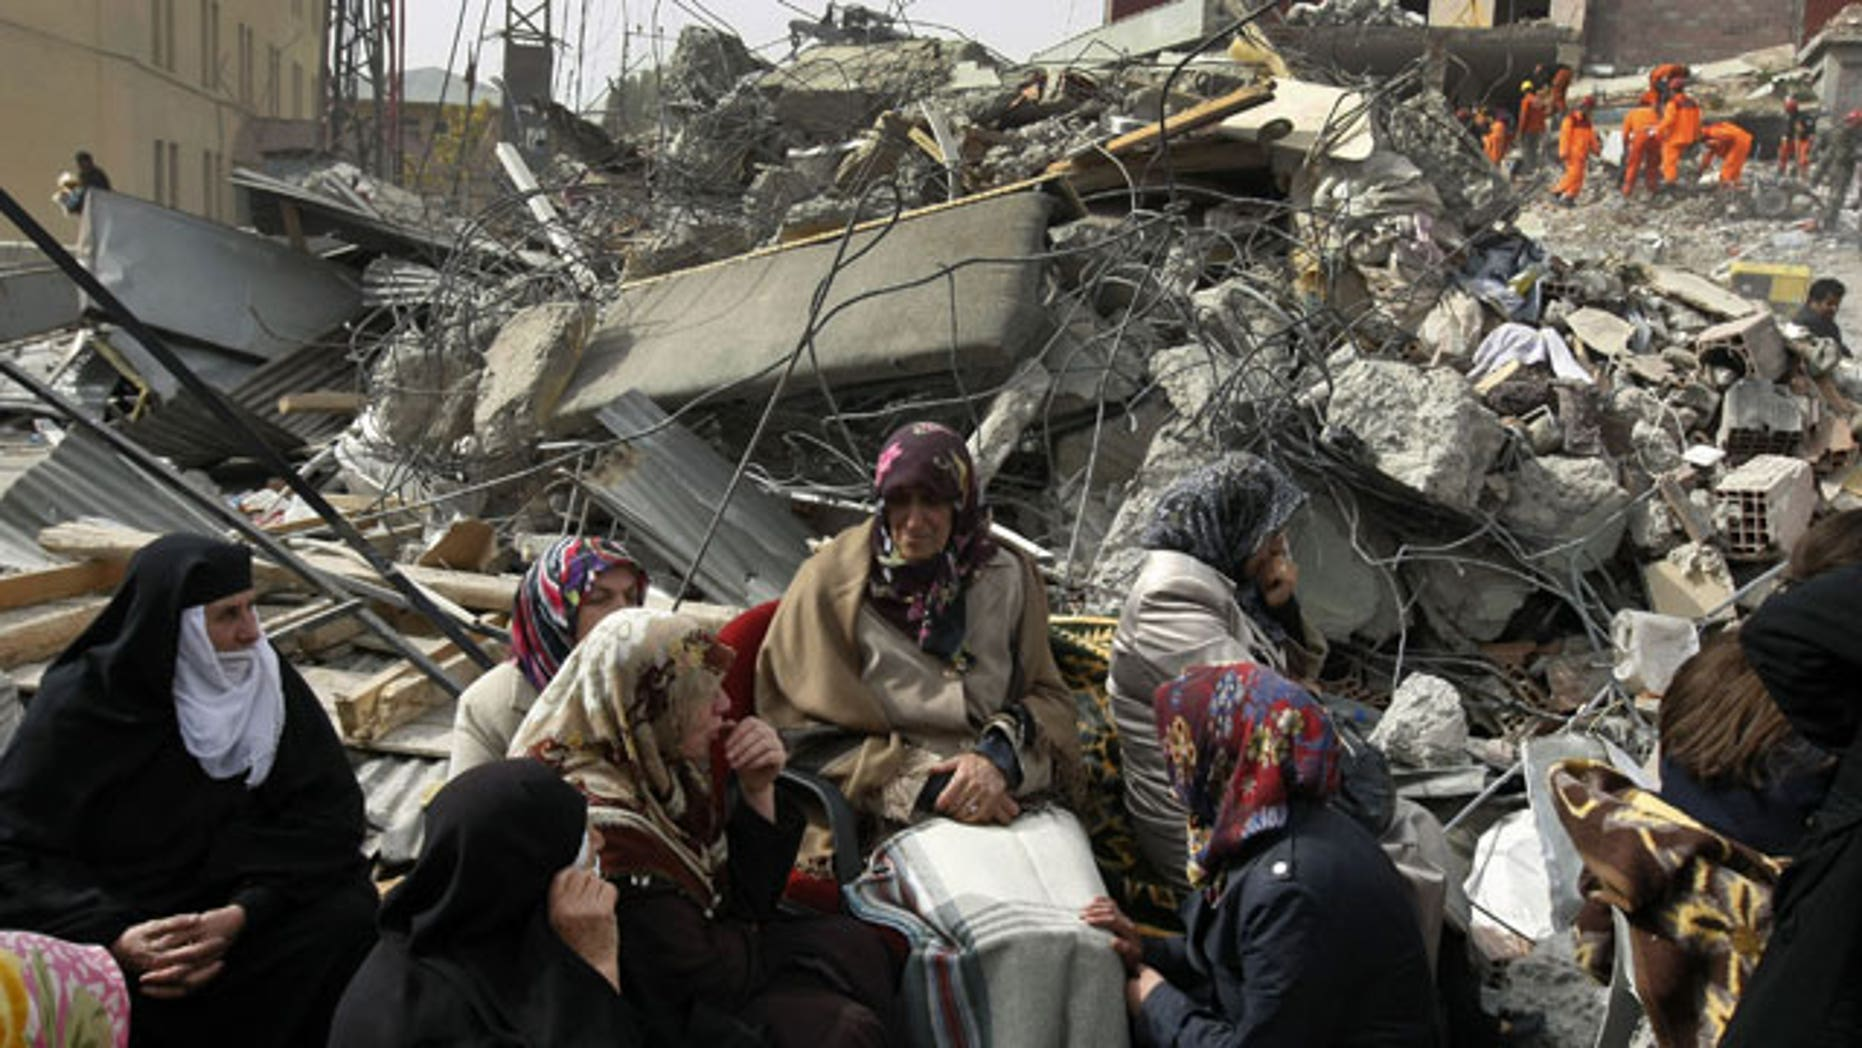 October 25, 2011: Family members wait for news as Turkish and Azeri rescuers work to save people trapped under the rubble of a collapsed building in Ercis, eastern Turkey.